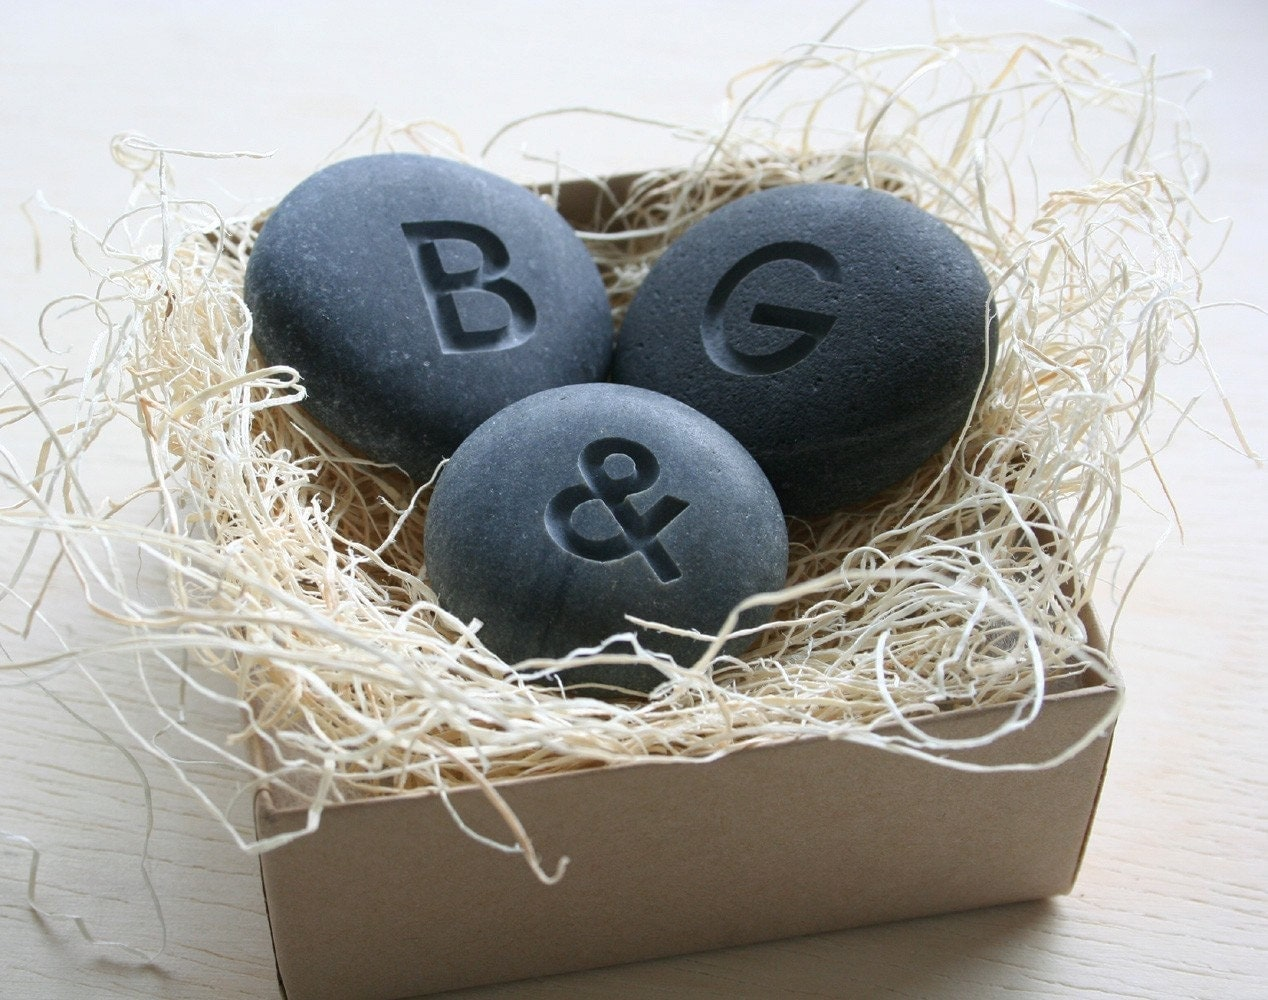 Petite love stones - set of 3 personalized initial pebbles by sjEngraving